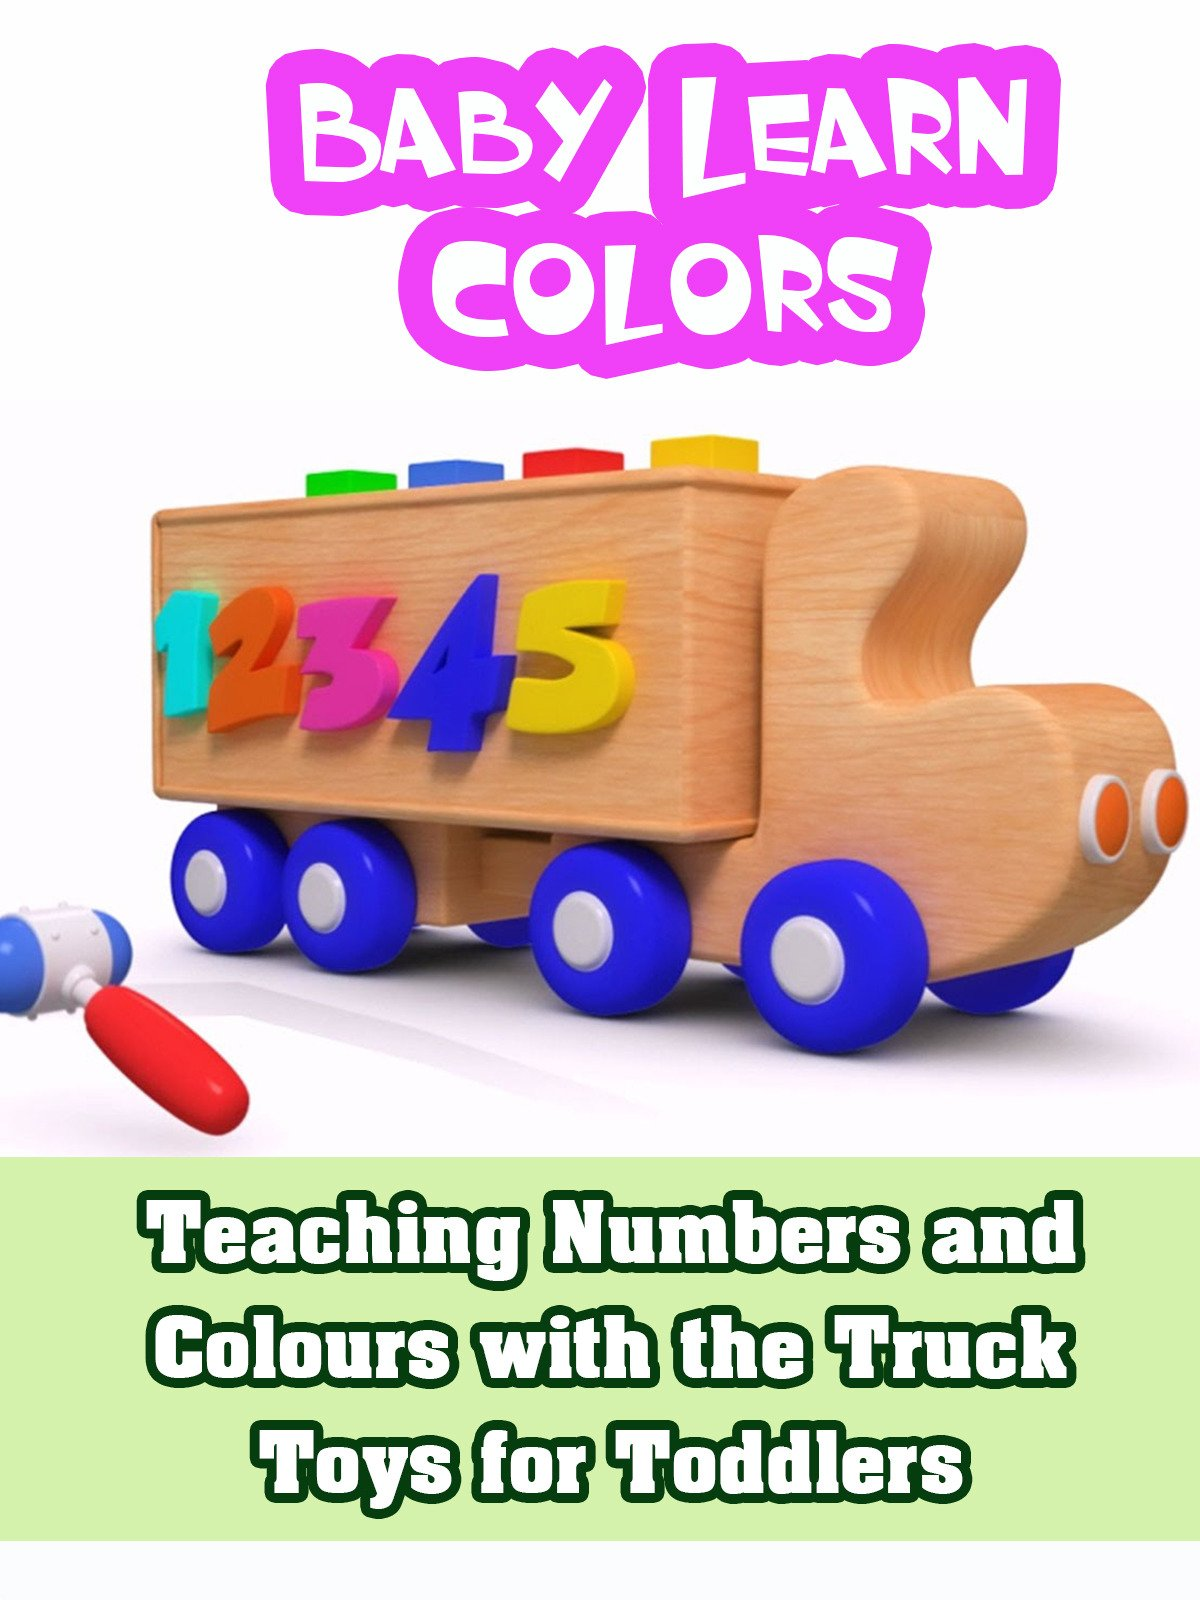 Teaching Numbers and Colours with the Truck Toys for Toddlers on Amazon Prime Video UK